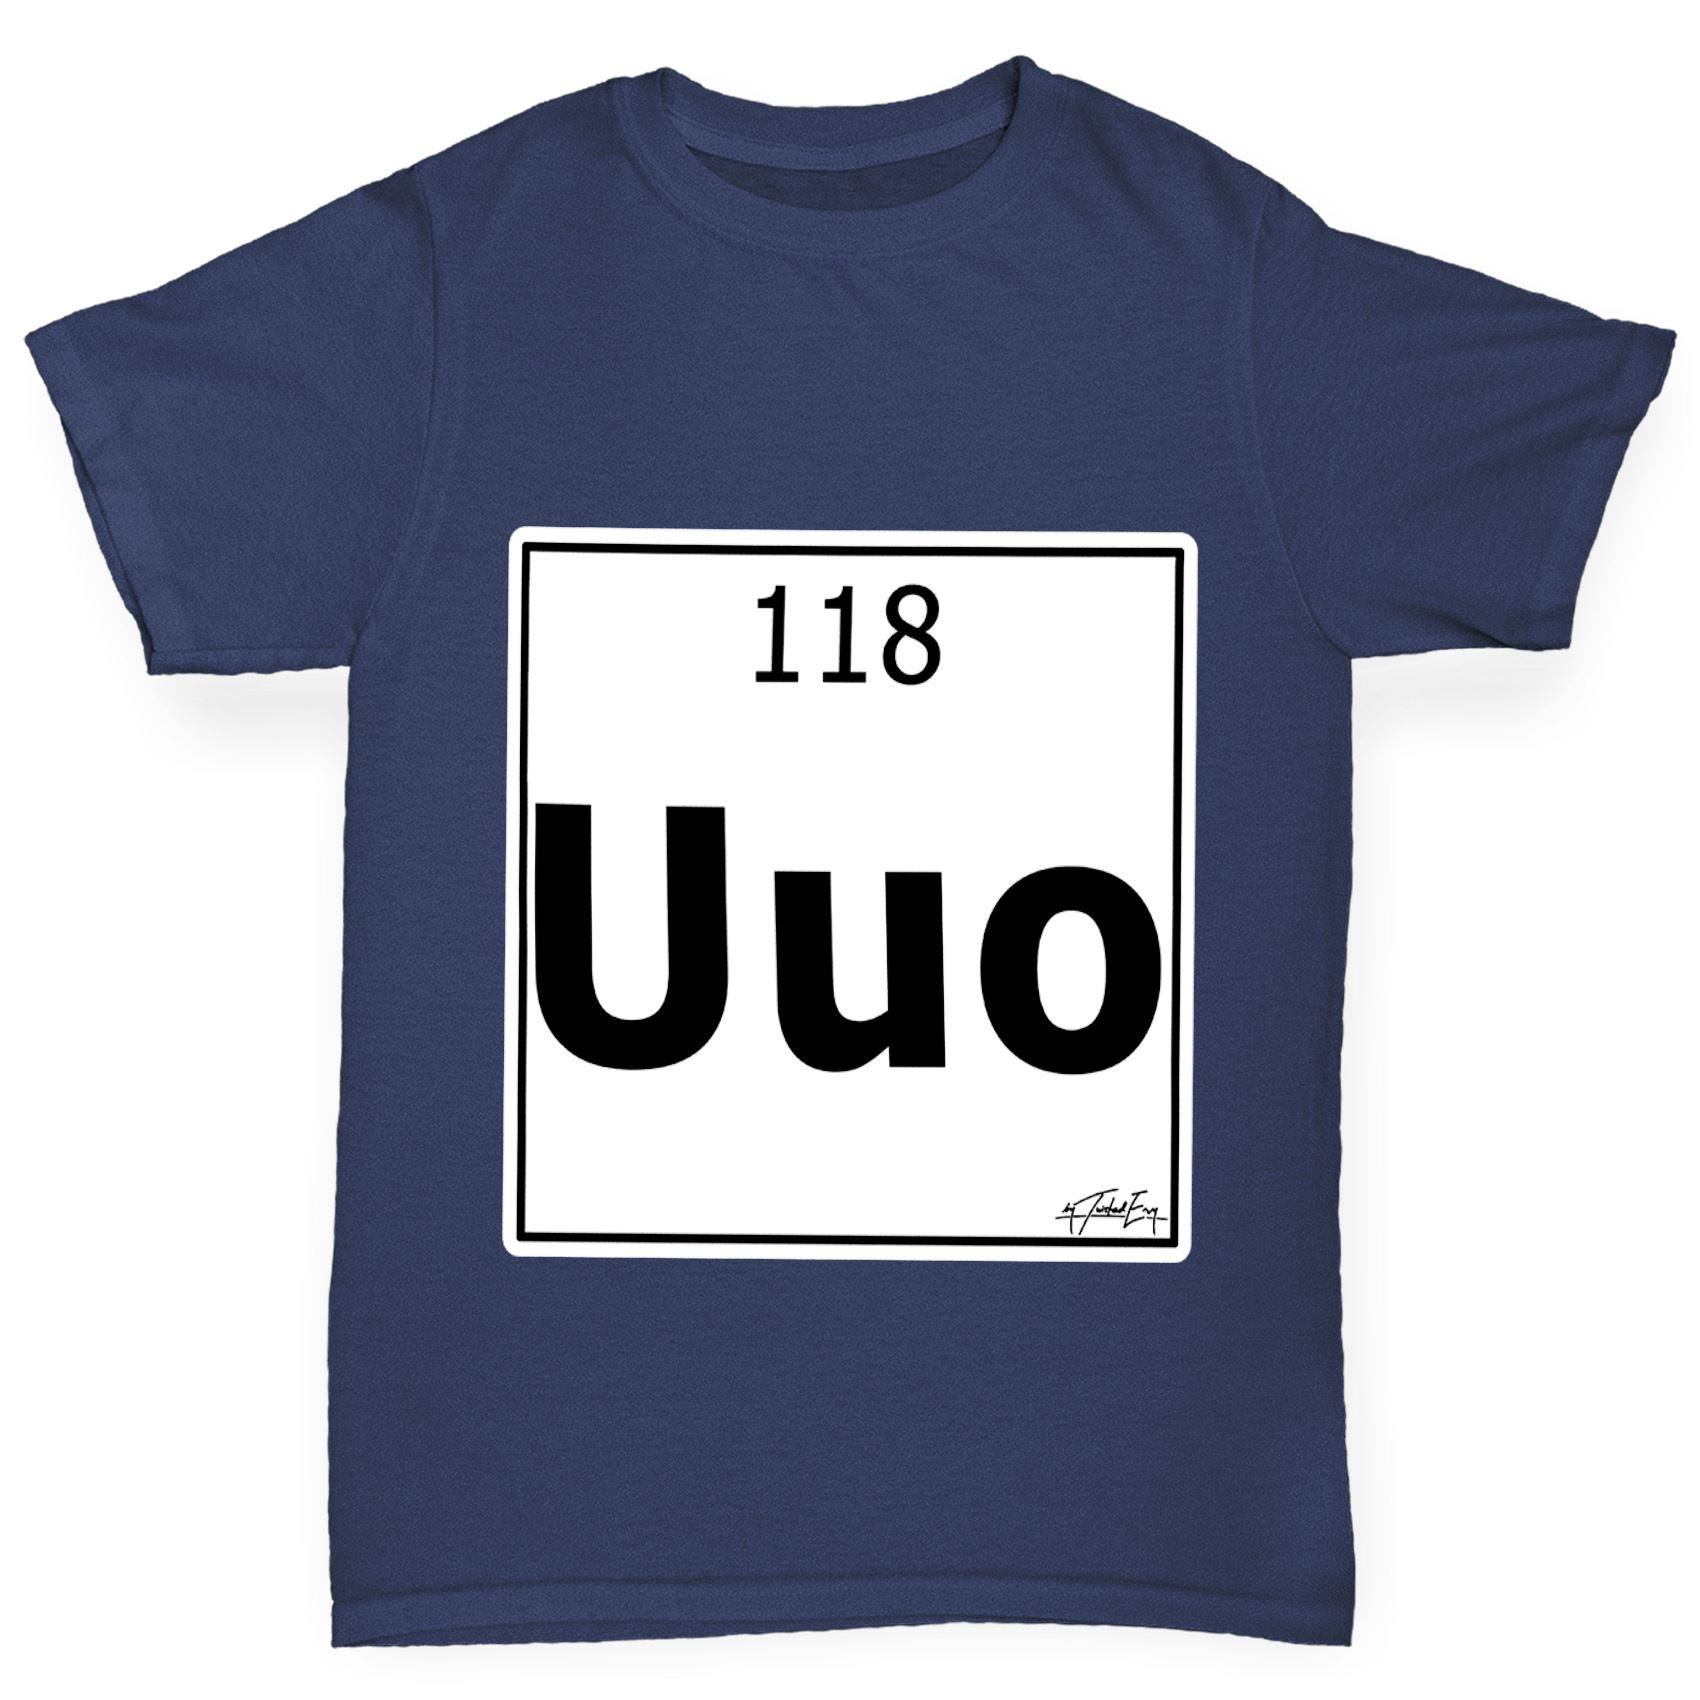 Twisted envy boys periodic table element uuo ununoctium t shirt ebay twisted envy boy 039 s periodic table element urtaz Choice Image